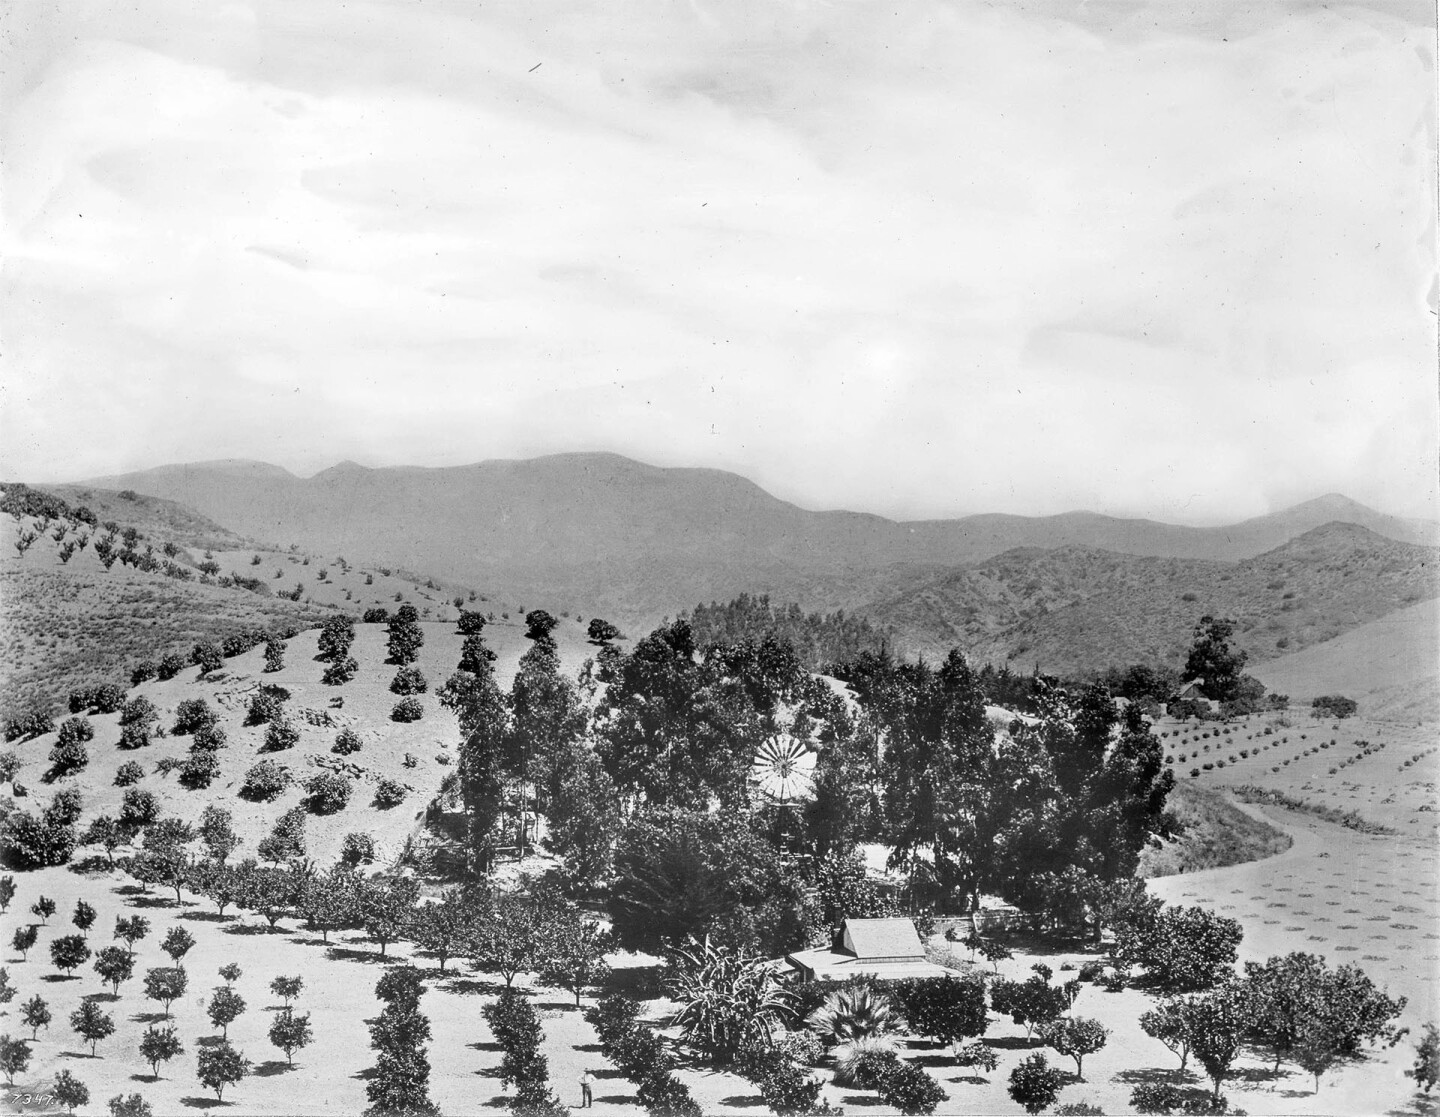 Henry Clausen'scitrus ranch at the mouth of Beachwood Canyon in 1910